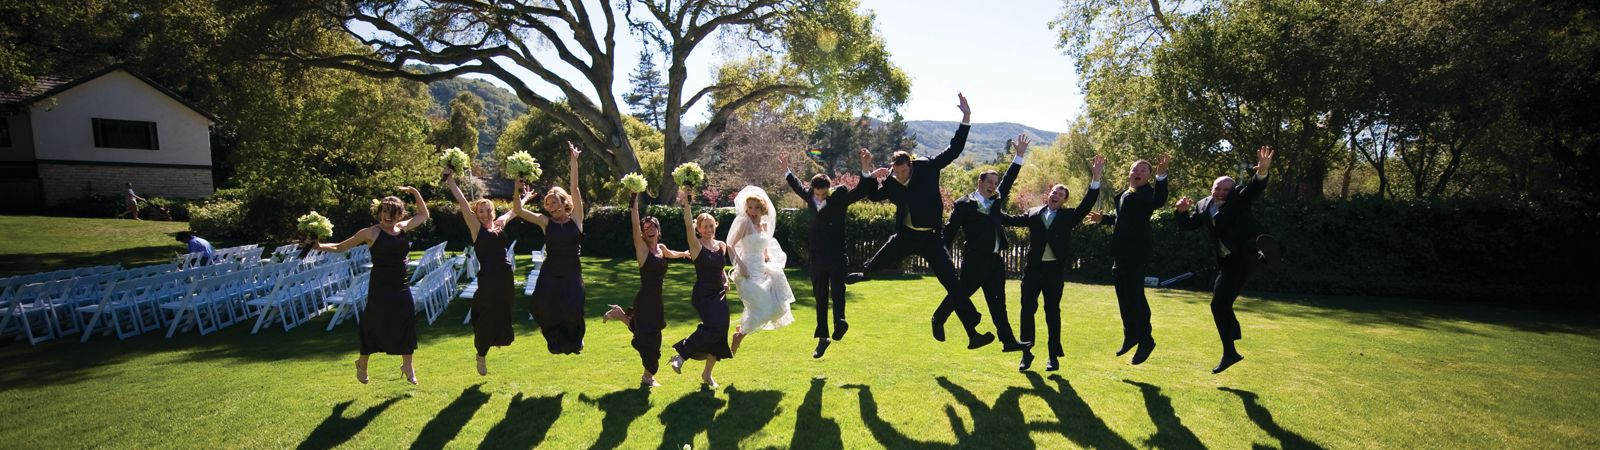 Carmel Valley Ranch_Weddings_bridal party jumping on River Ranch lawn